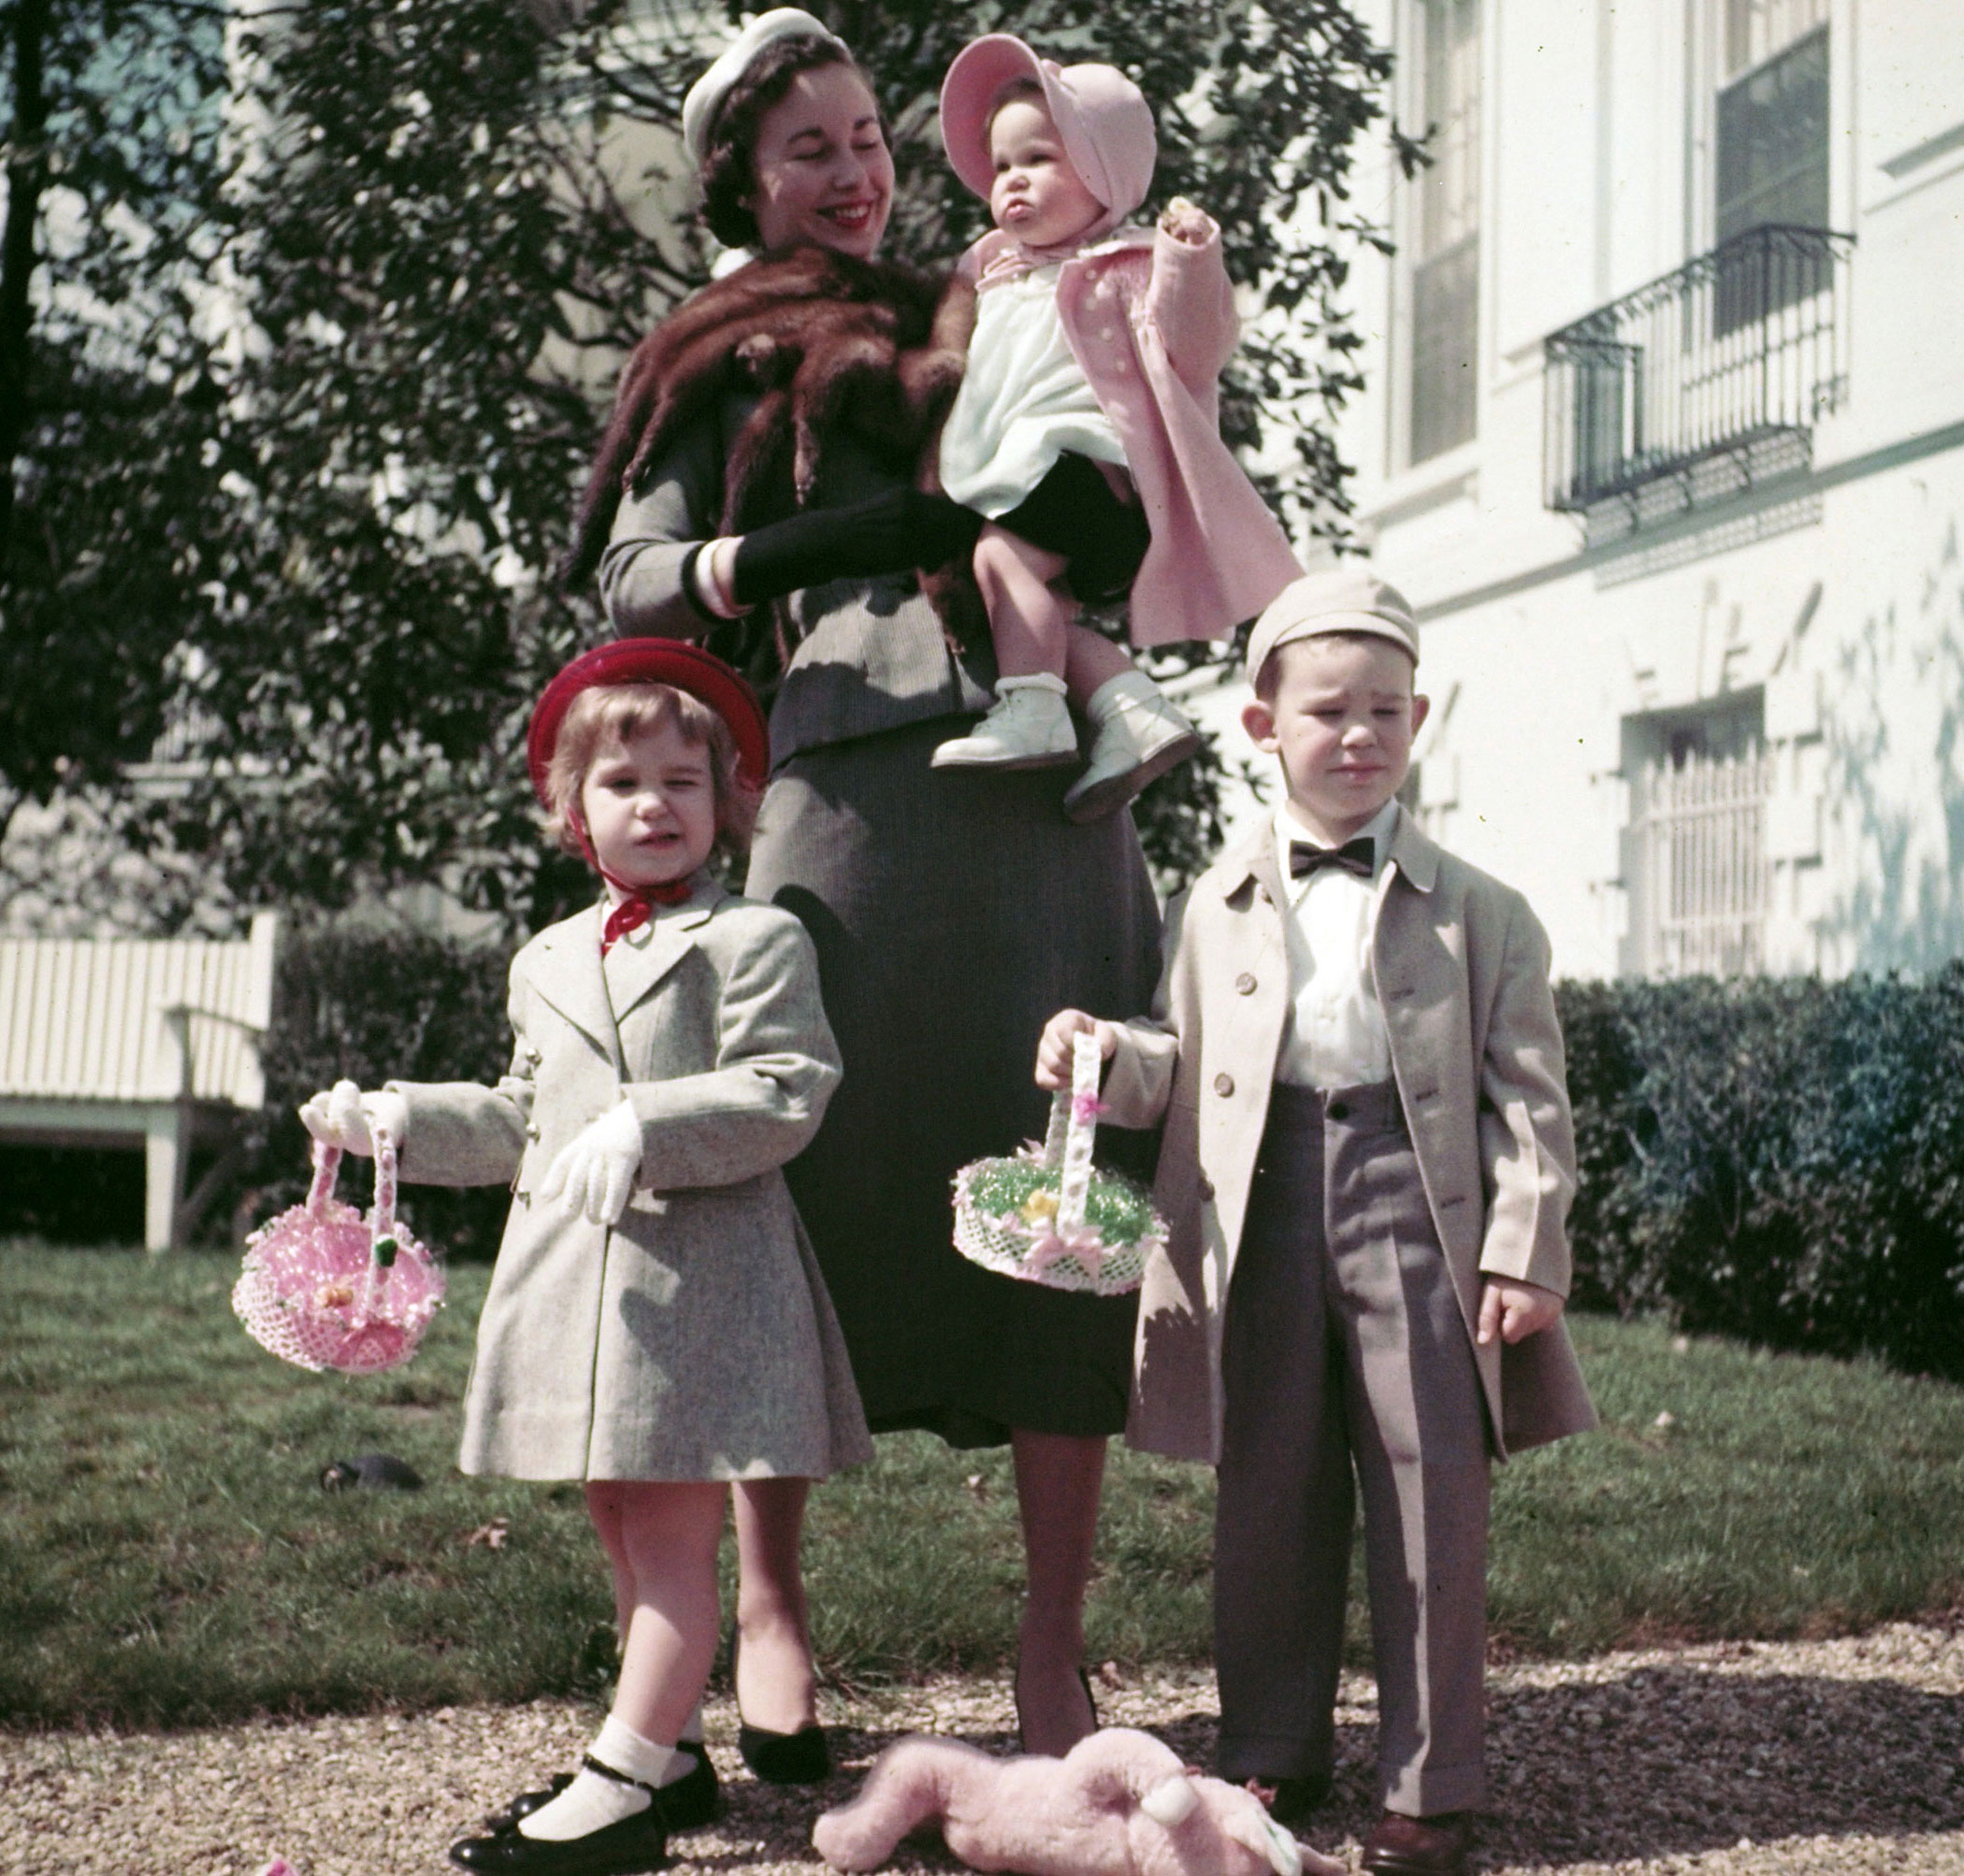 """<b>Caption from LIFE.</b> In spring clothes, Eisenhower's grandchildren display their finery. Baby Susan, held by her mother Barbara, wears springlike pink. LIttle Barbara Anne, cocking a wink, has some """"big girl"""" gloves and a red-ribboned hat. David has an Eton cap and the snappy bow tie currently fancied by five-year-old pace-setters."""